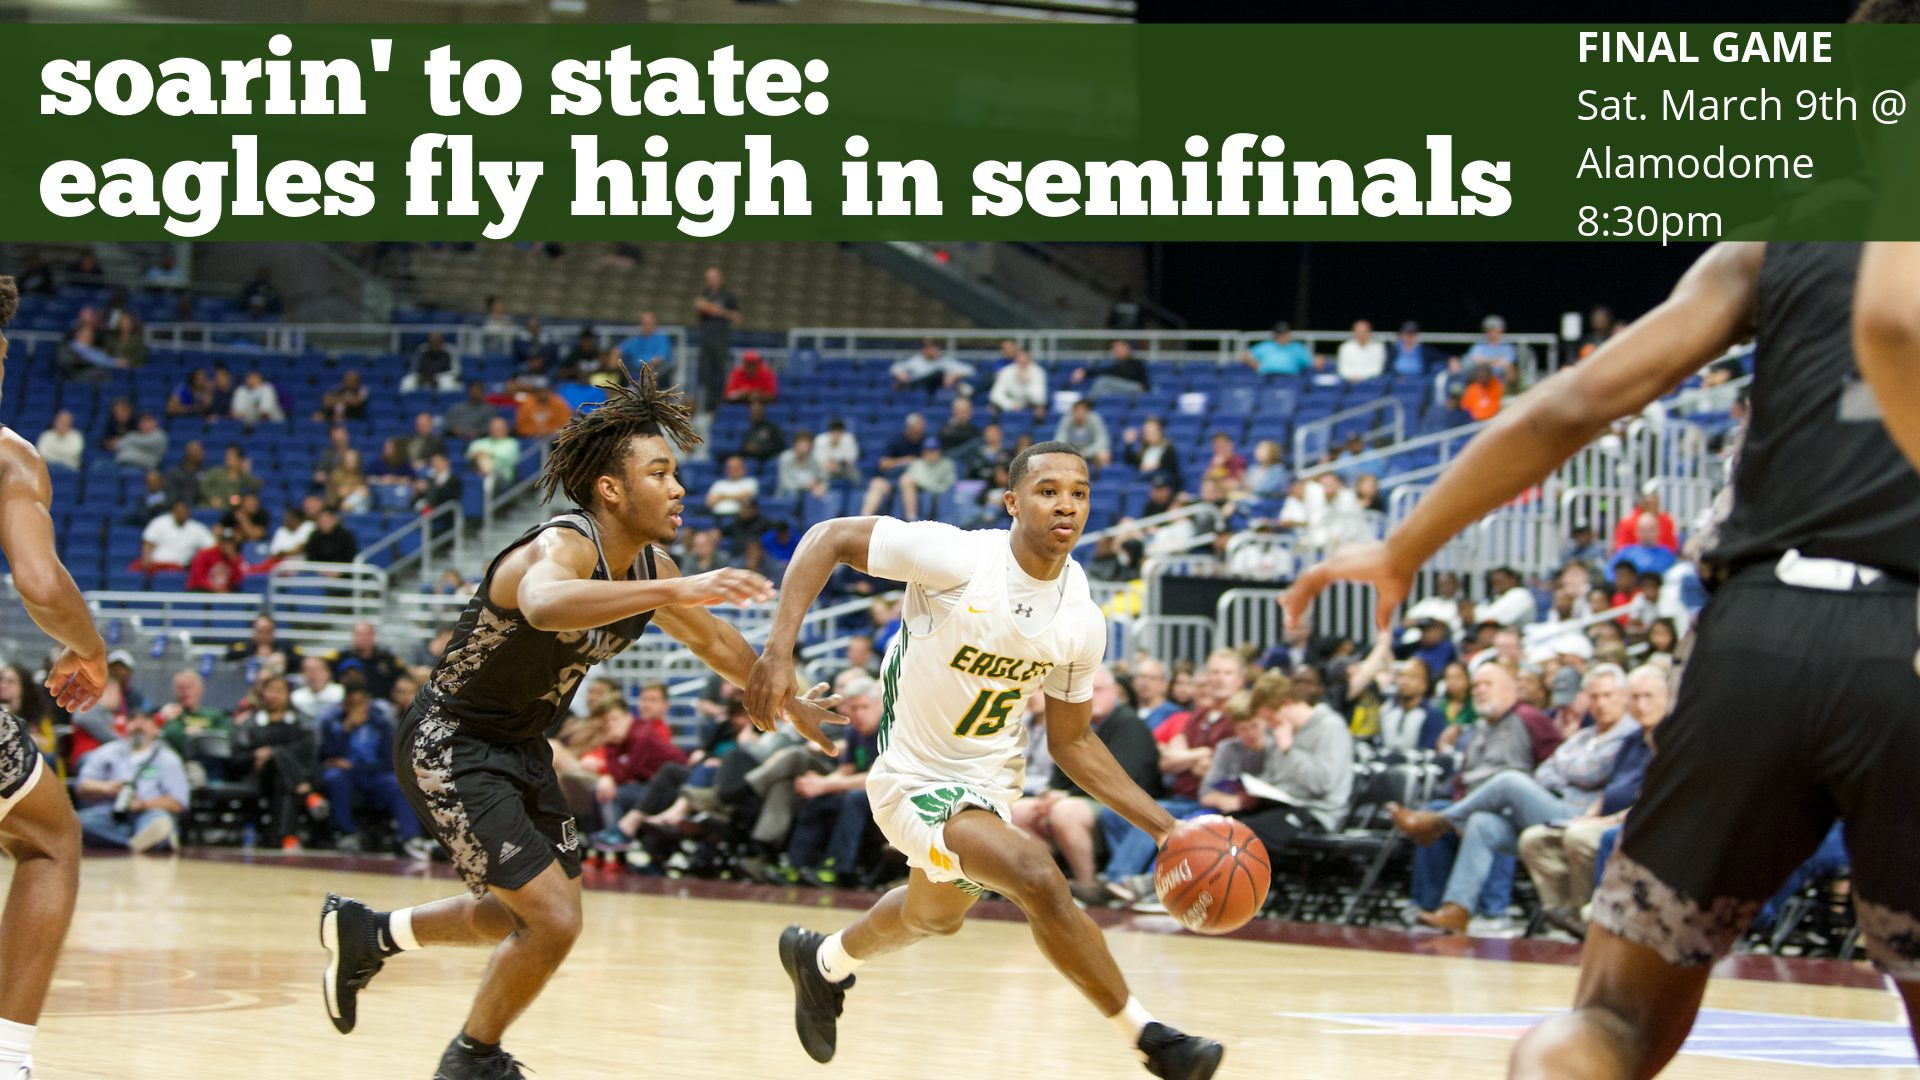 Klein Forest Defeats Cibolo Steele and Advances to State Finals